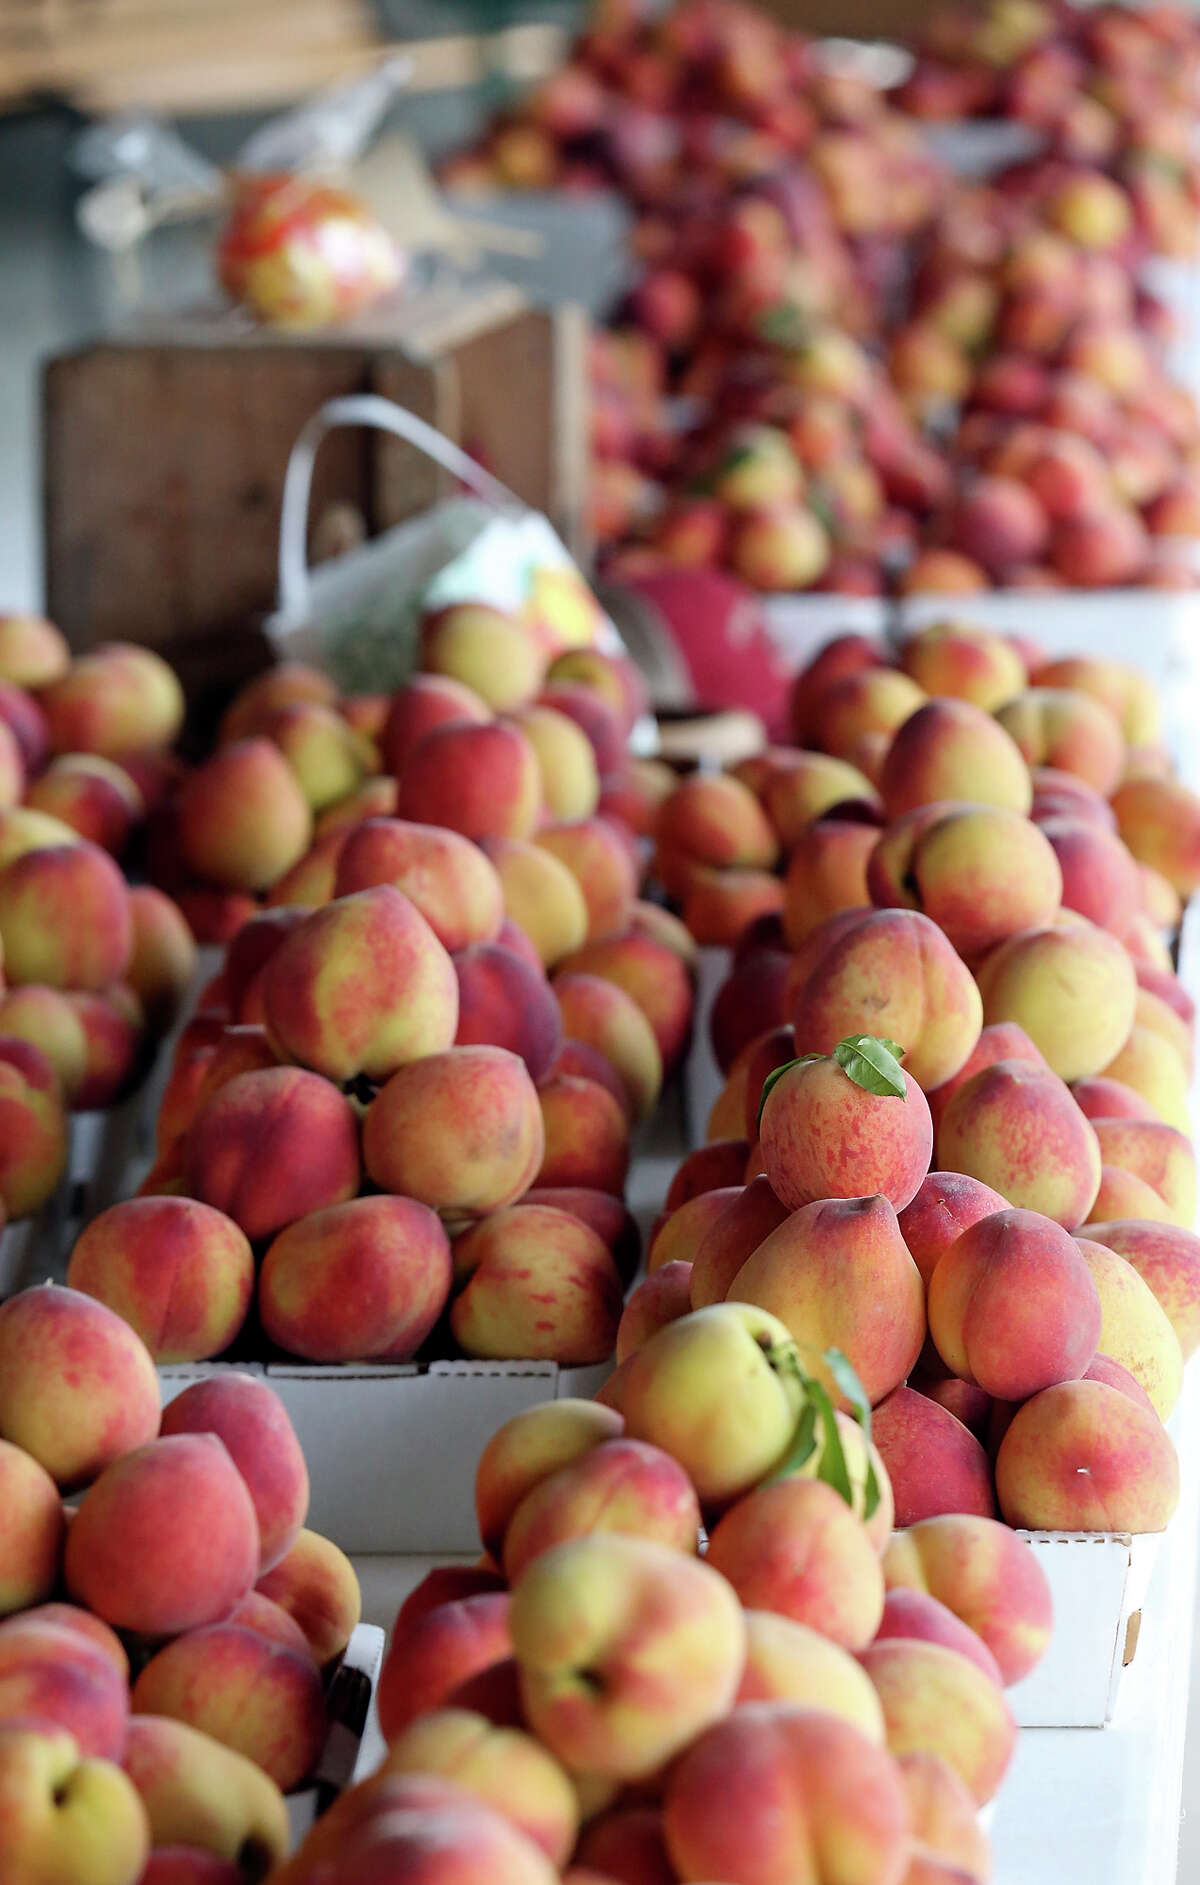 These peaches were available at Vogel Orchards earlier this season.